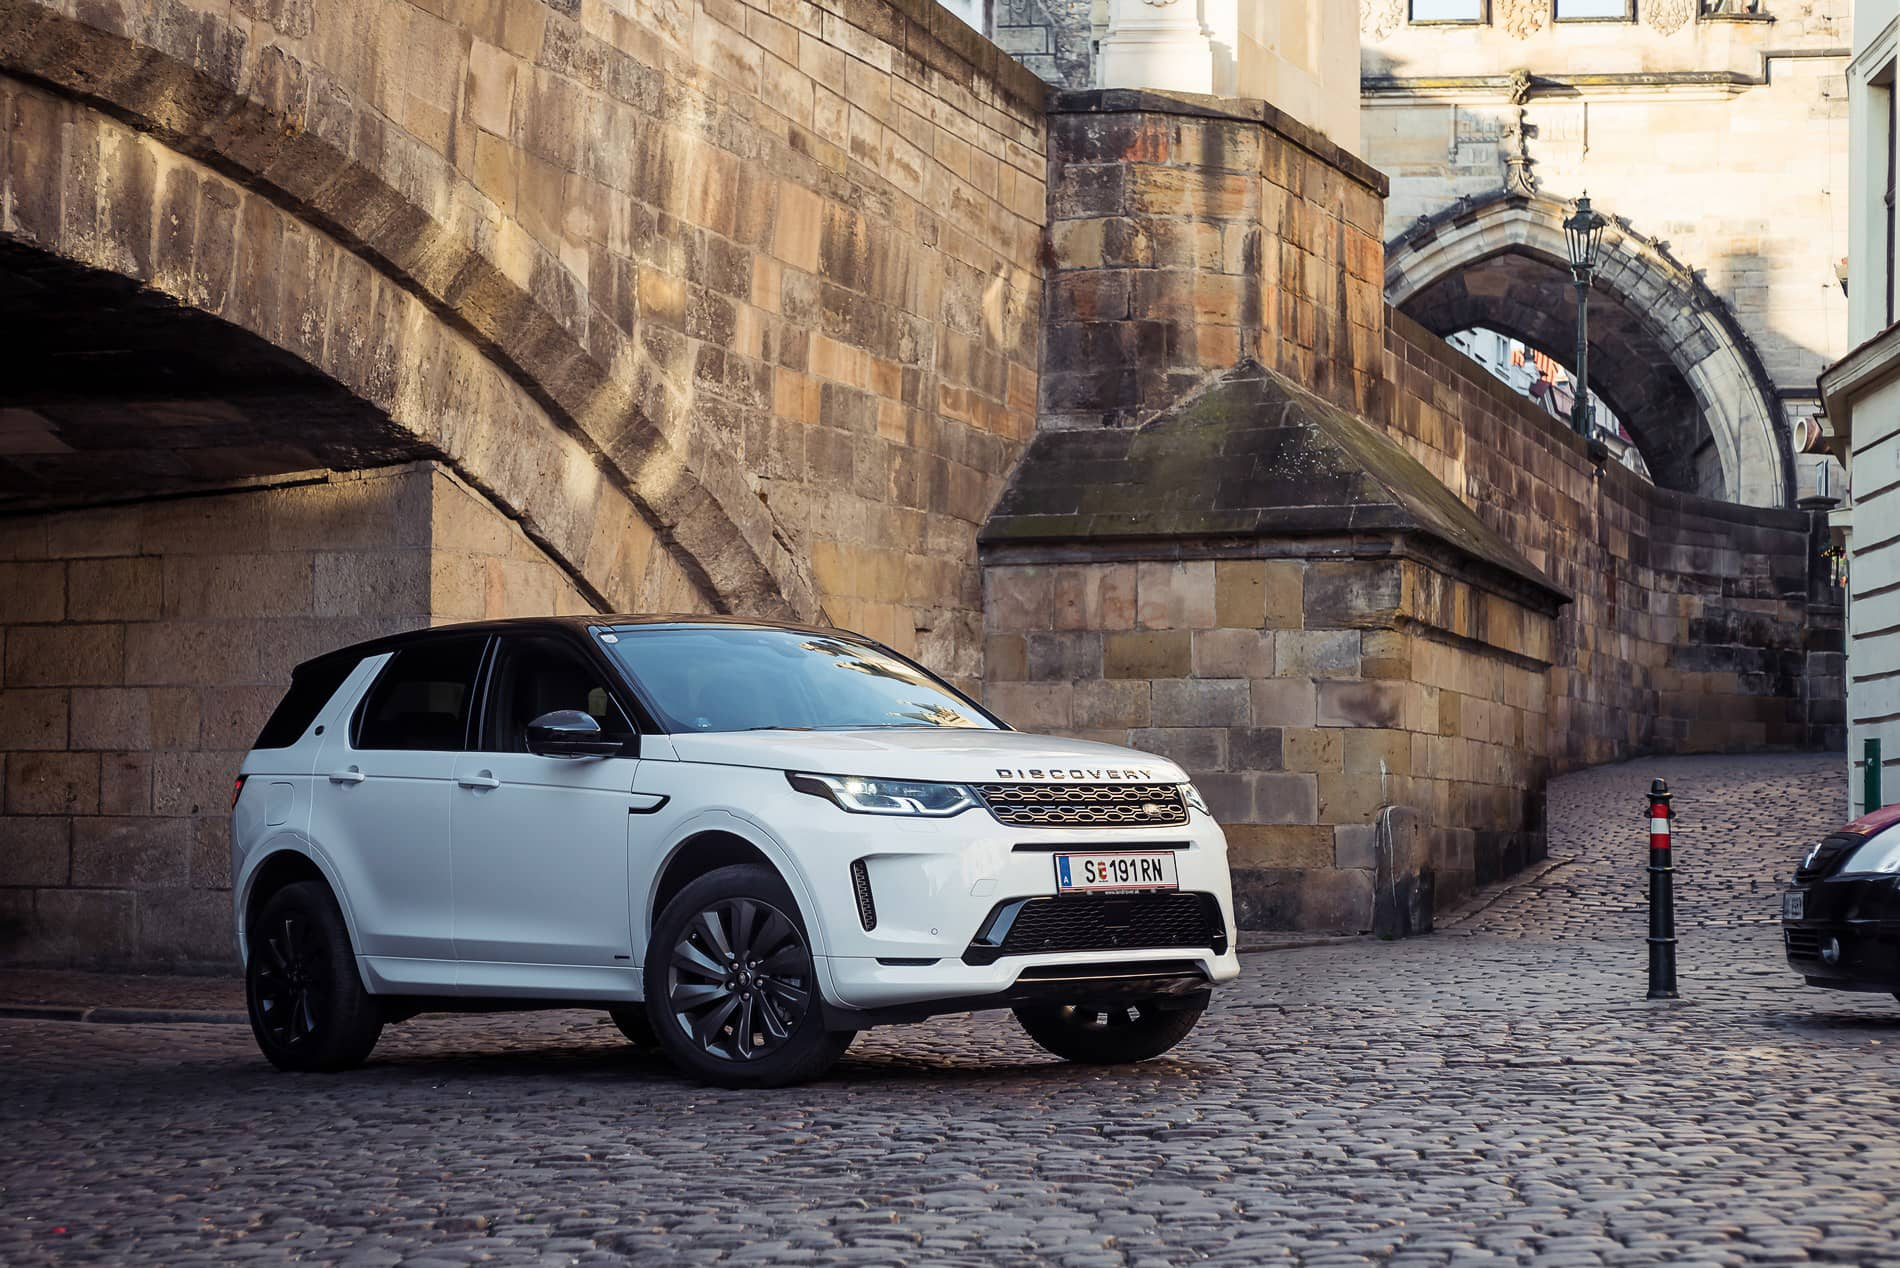 land rover discovery 2020 (4)